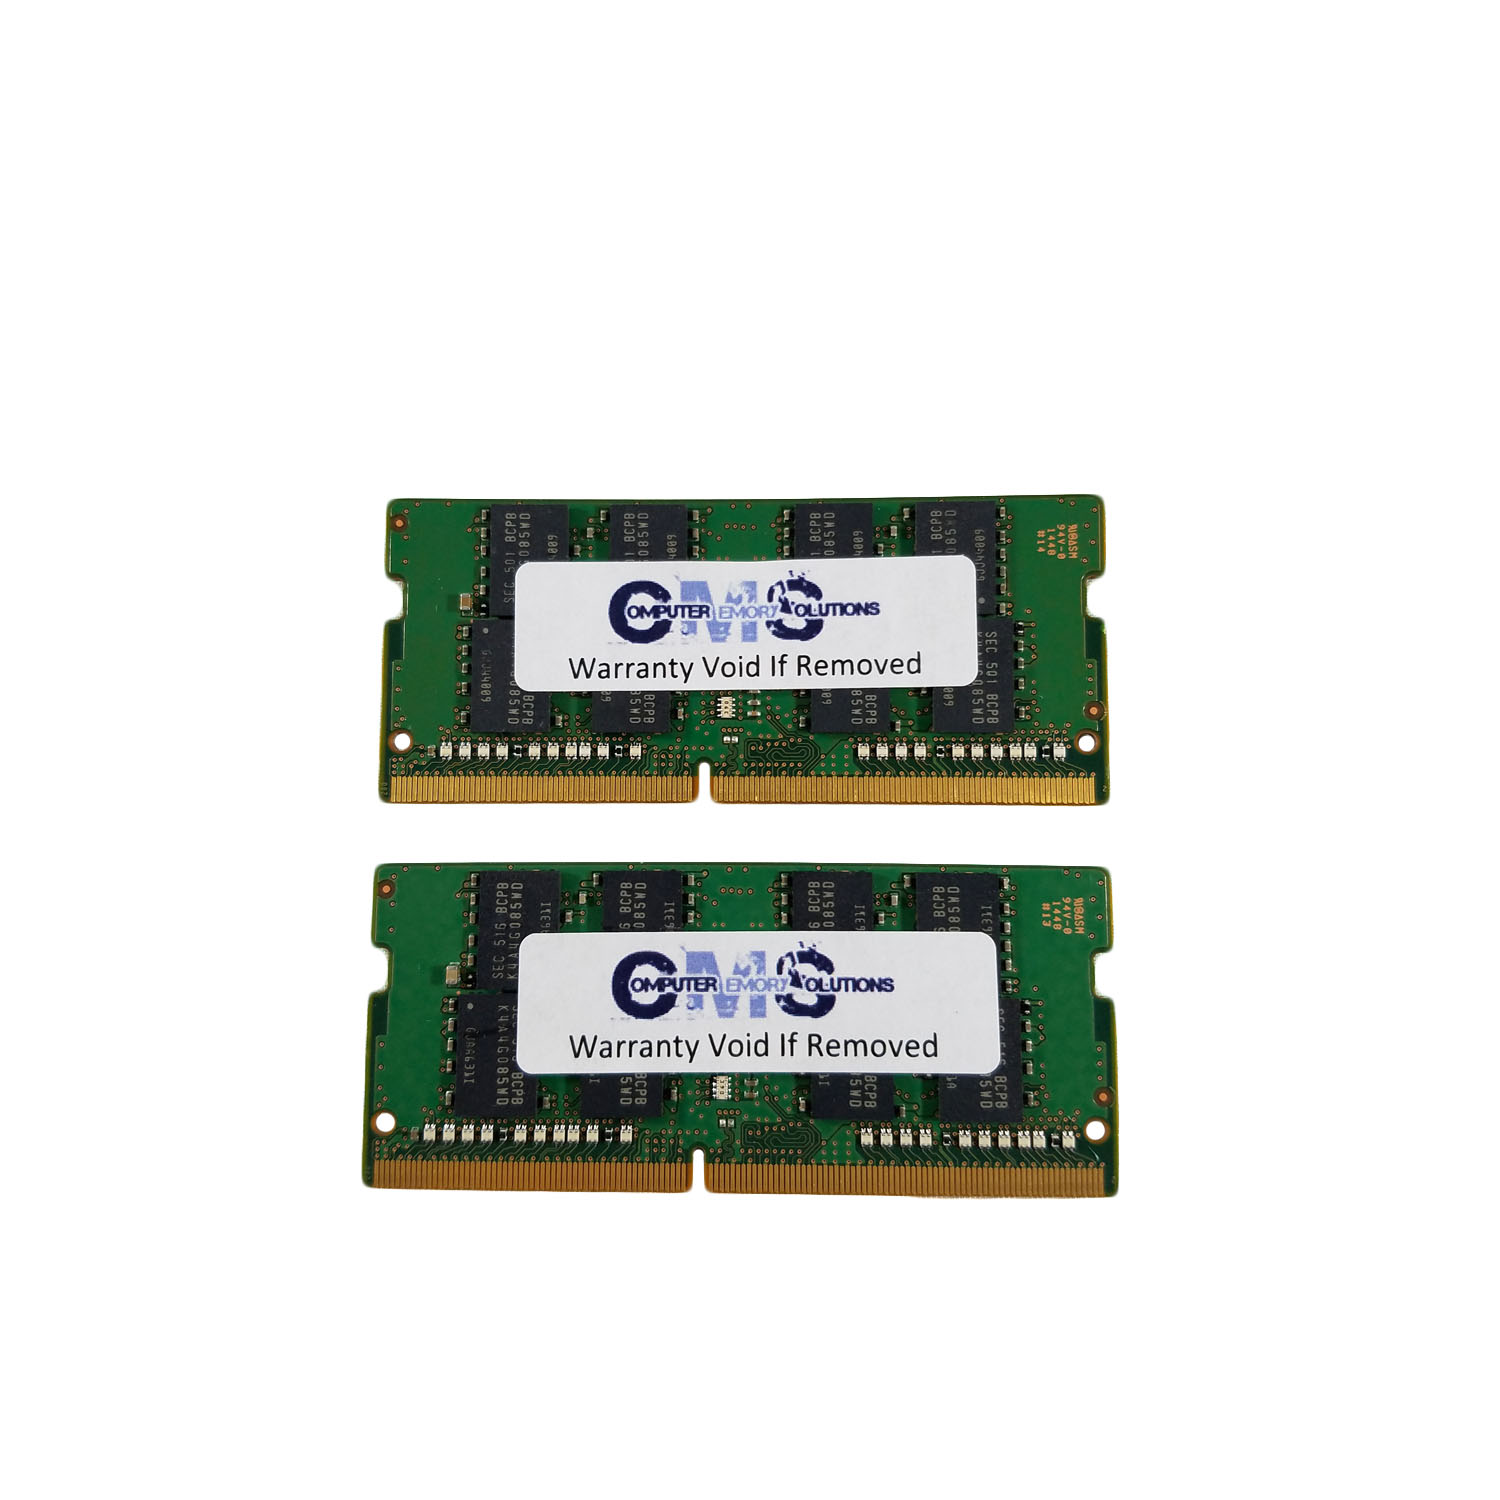 32GB 2x16GB RAM Memory Compatible with Dell Precision 15 7000 Series (7510) BY CMS A1